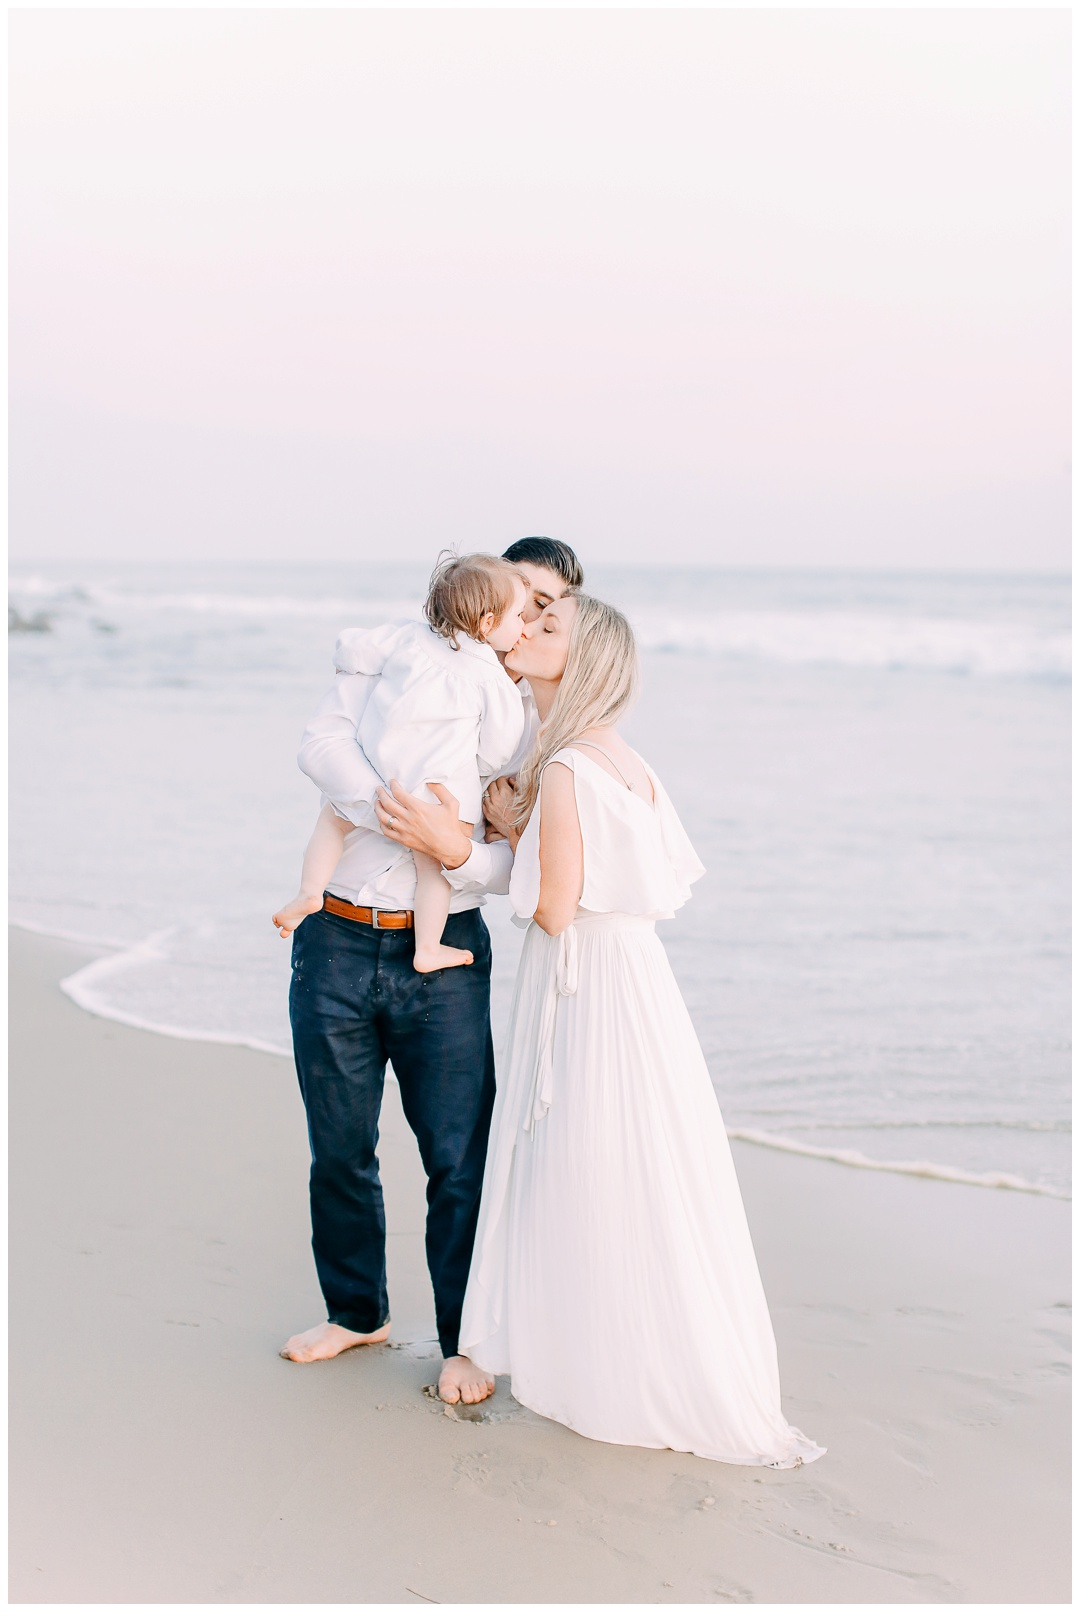 Newport_Beach_Maternity_Photographer_Orange_County_Maternity_Photography_Cori_Kleckner_Photography_Orange_County_Family_Photographer_Beach_Maternity_Session_1157.jpg